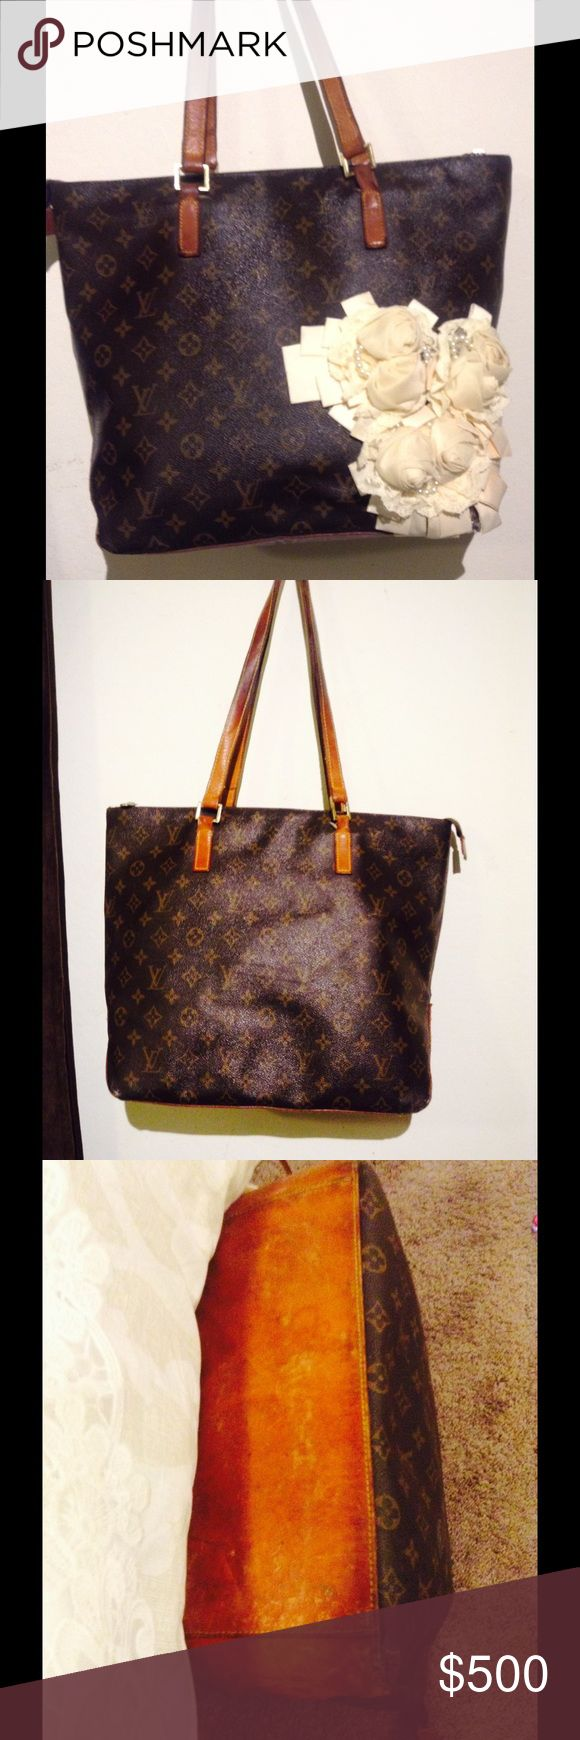 Louis Vuitton cabas mezzo tote The bag is 100% authentic comes with dustbag the original stated that there was a big scratch on the front therefor she patched with floral design also there is some sign do wear on the bottom corner. Louis Vuitton Bags Totes